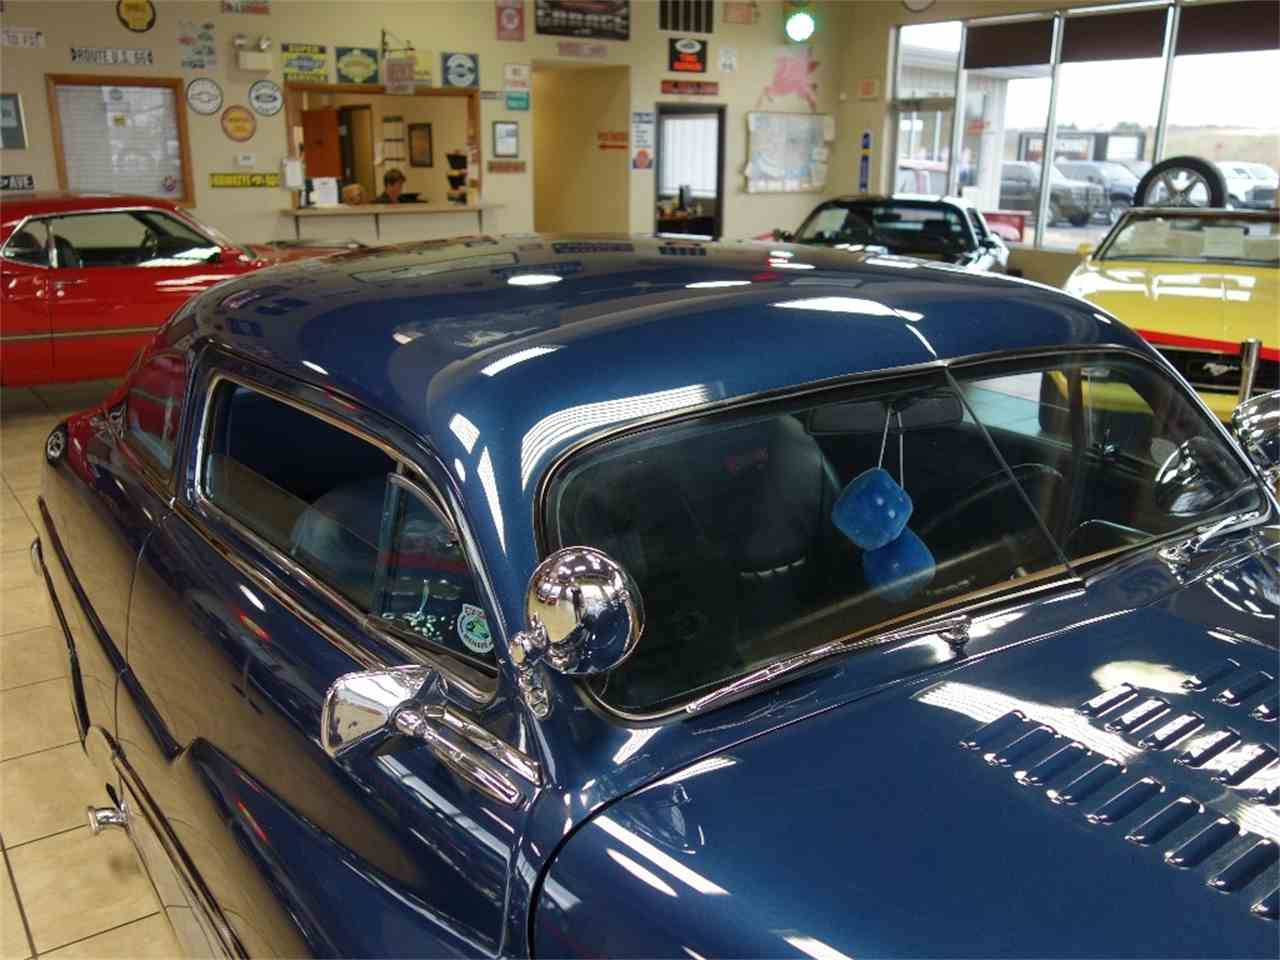 Large Picture of Classic '49 Mercury Coupe located in De Witt Iowa - $64,997.00 Offered by Thiel Motor Sales Inc. - JVNV